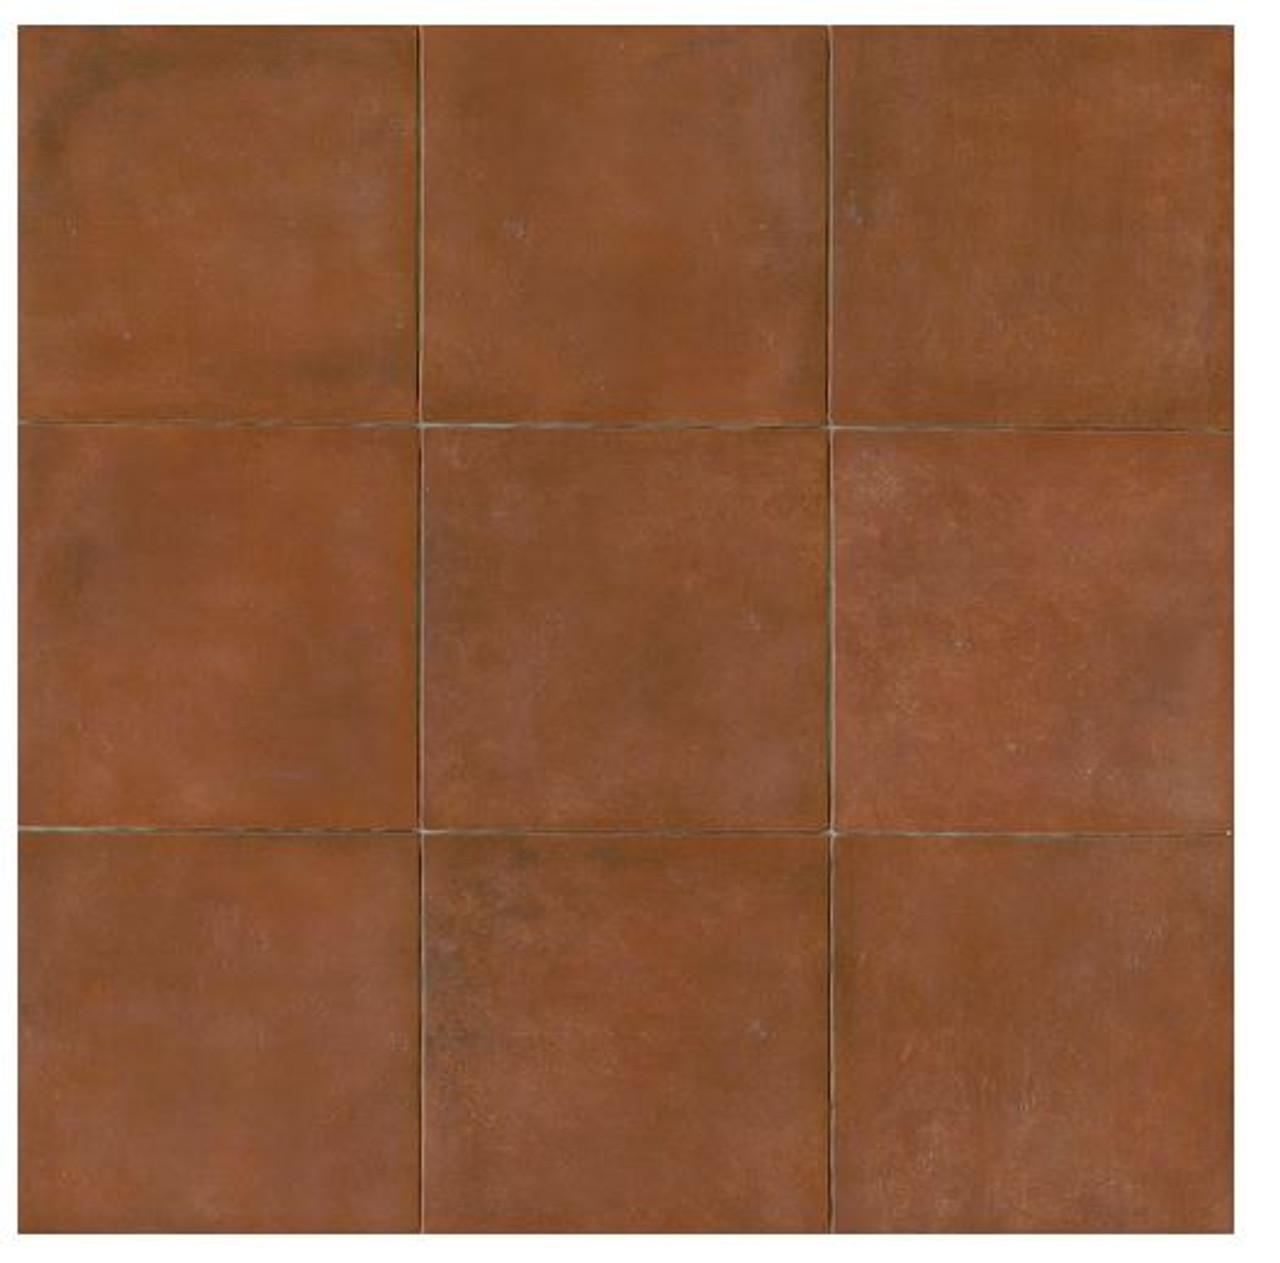 Terra Cotta Porcelain Tile 14x14 Matte Finish Cotto Field